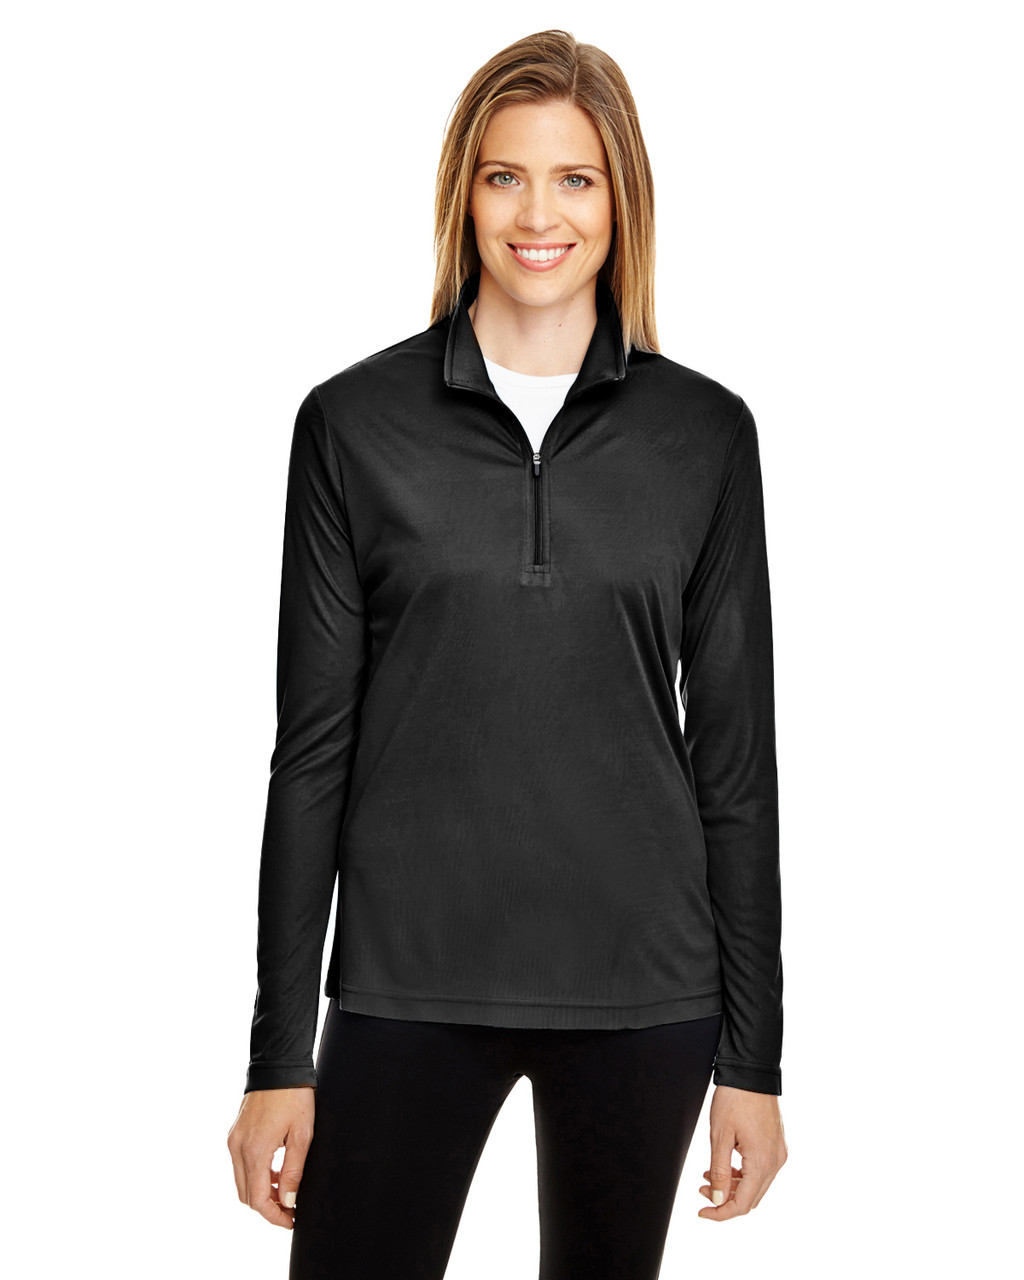 Black - TT31W Team 365 Ladies' Zone Performance Quarter-Zip Shirt